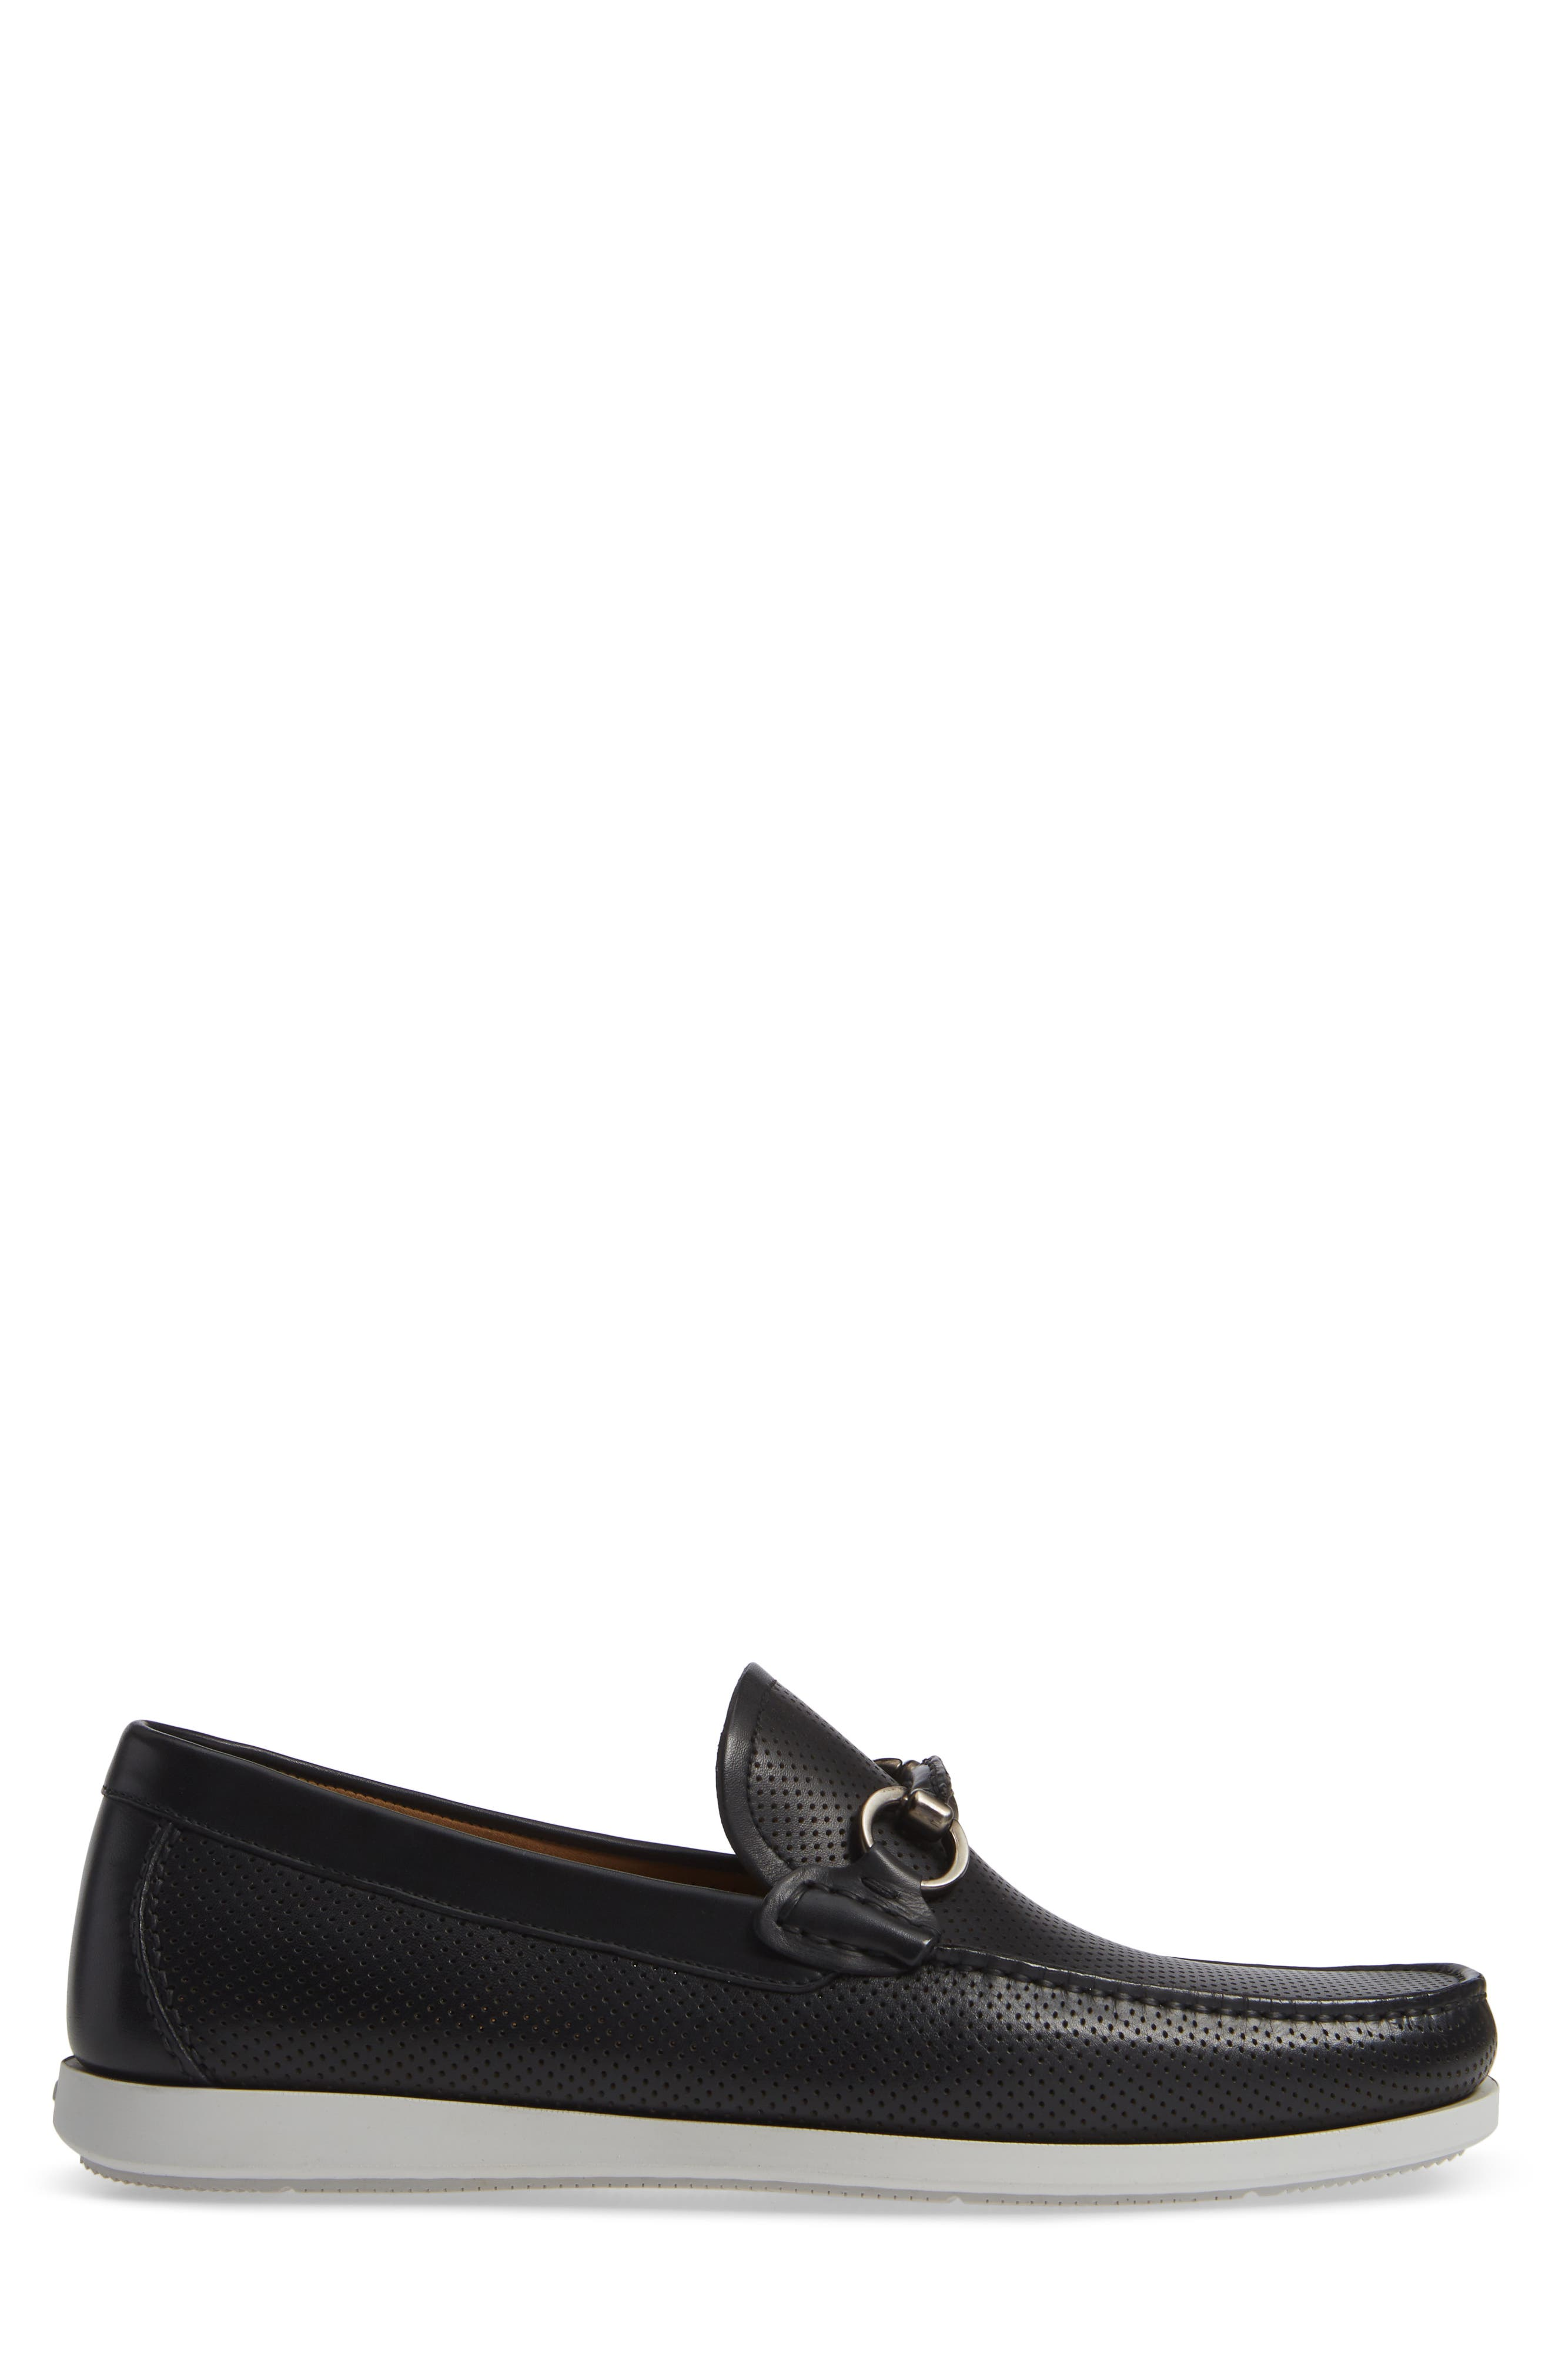 Beasley Perforated Moc Toe Bit Loafer,                             Alternate thumbnail 3, color,                             BLACK LEATHER